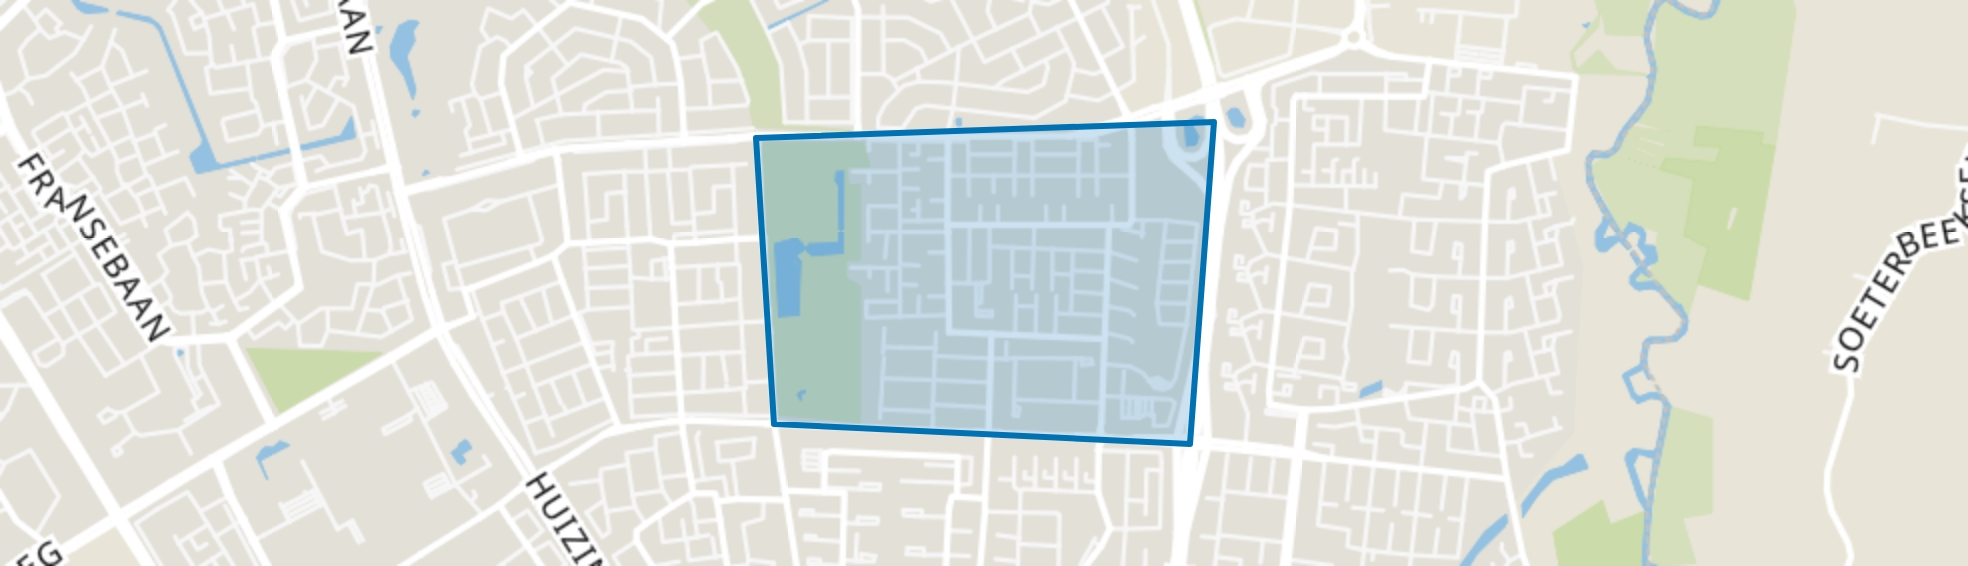 Tempel, Eindhoven map